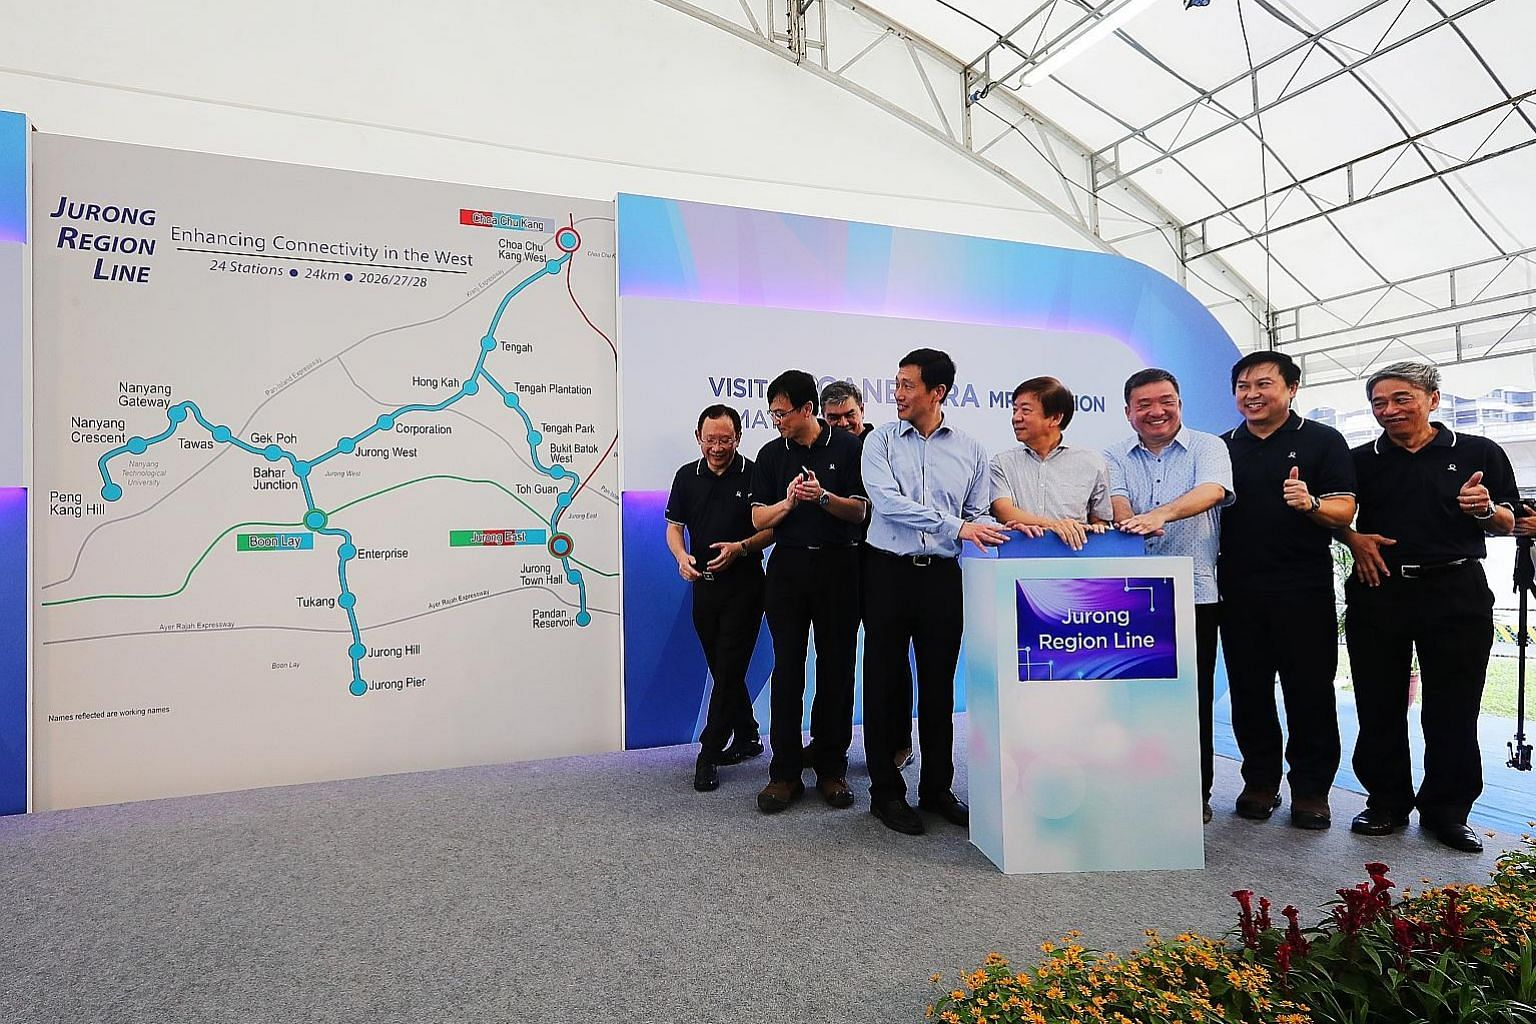 Above: Transport Minister Khaw Boon Wan, flanked by Education Minister and fellow Sembawang GRC MP Ong Ye Kung and Government Parliamentary Committee for Transport chairman Sitoh Yih Pin, unveiling the Jurong Region Line's alignment at the site of th